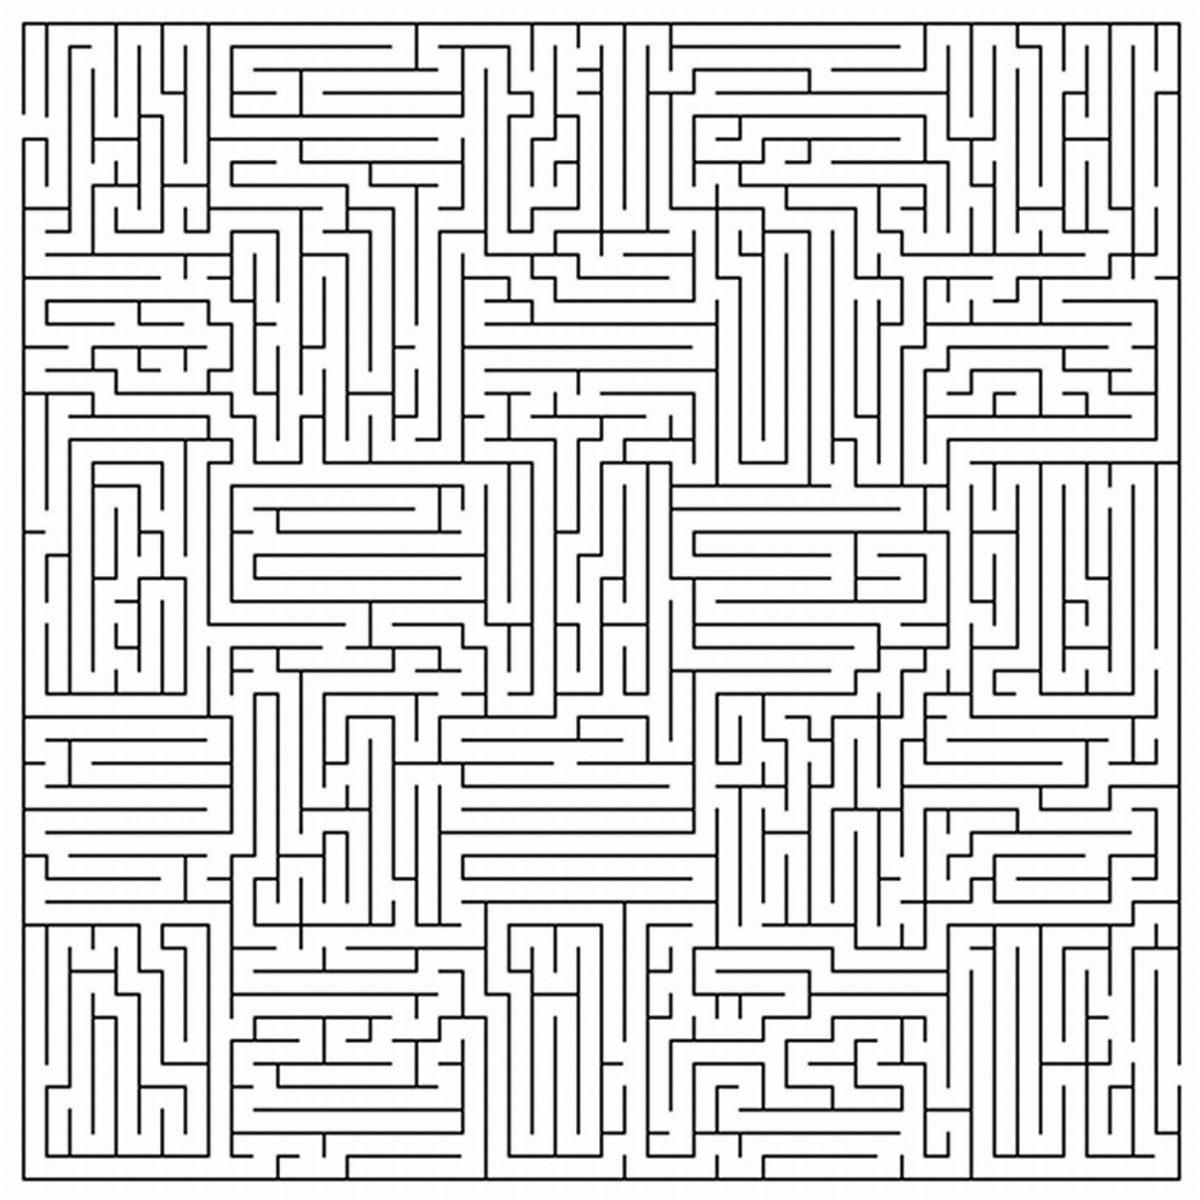 Free Printable Mazes For Kids, Toddlers & Adults - Free Printable Mazes